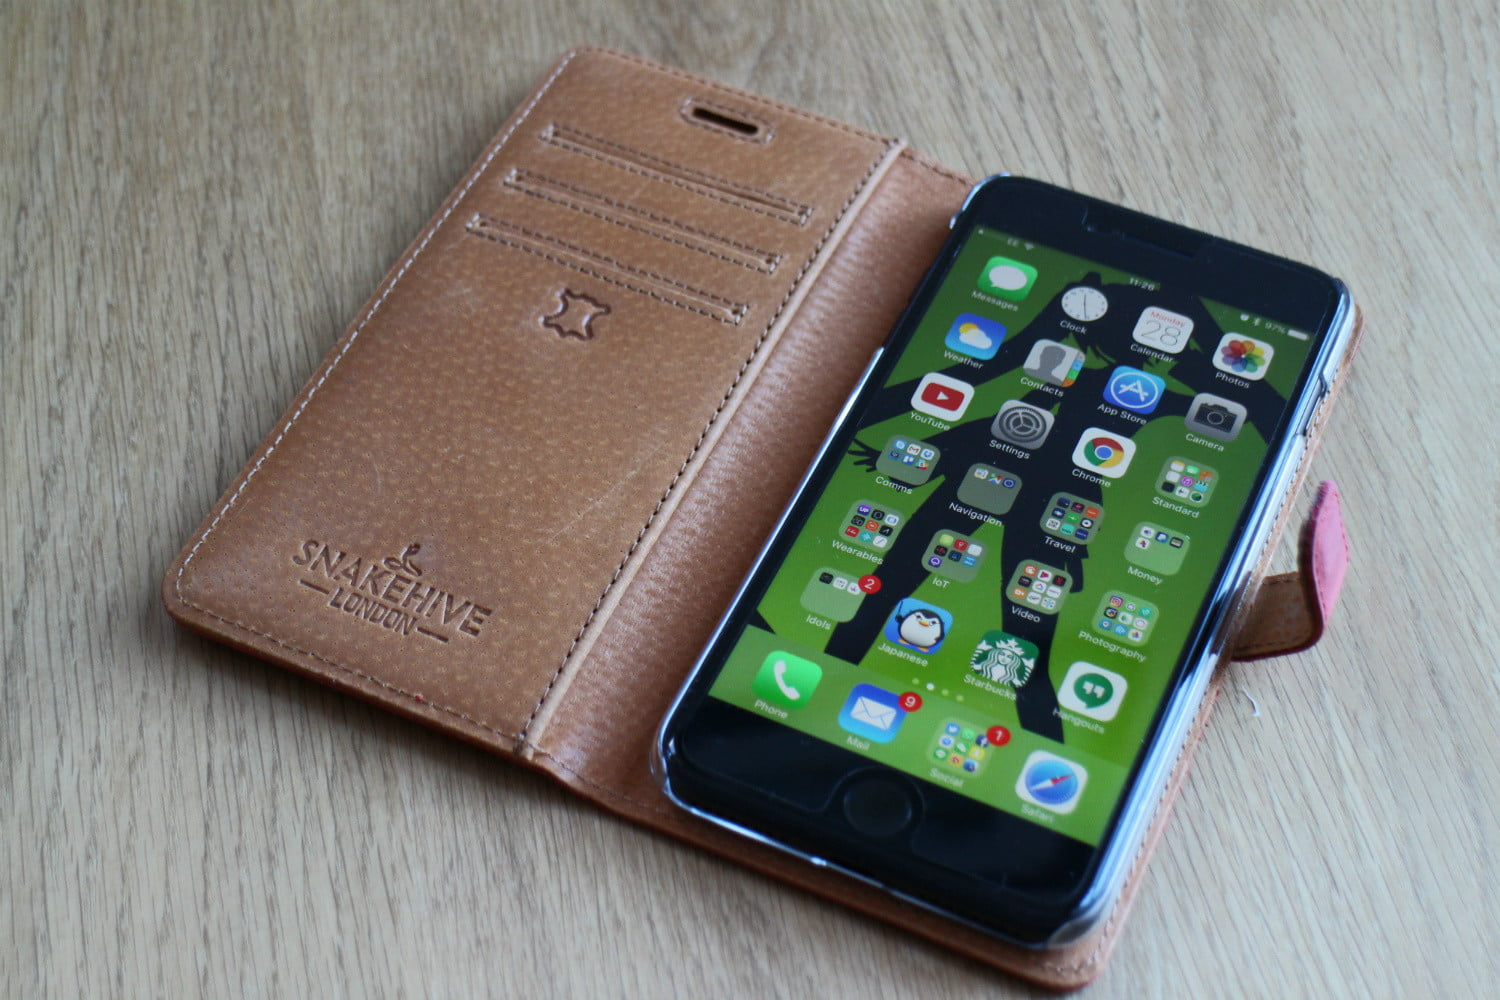 uk police mug suspect for iphone snakehive leather wallet 7 plus open